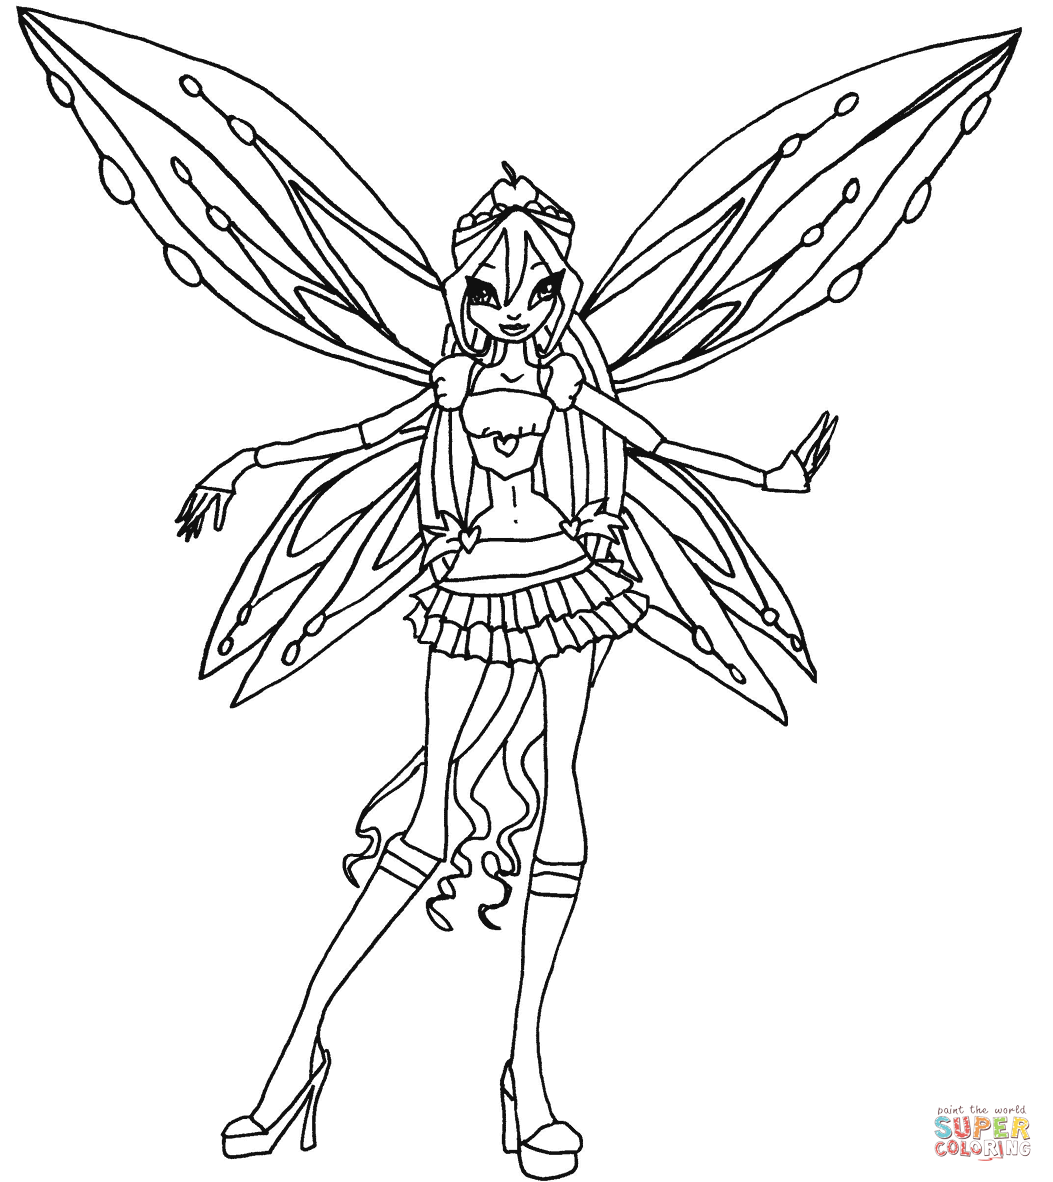 Winx Coloring Pages With Winx Club Coloring Books Coloring Pages Disney Princess Drawings